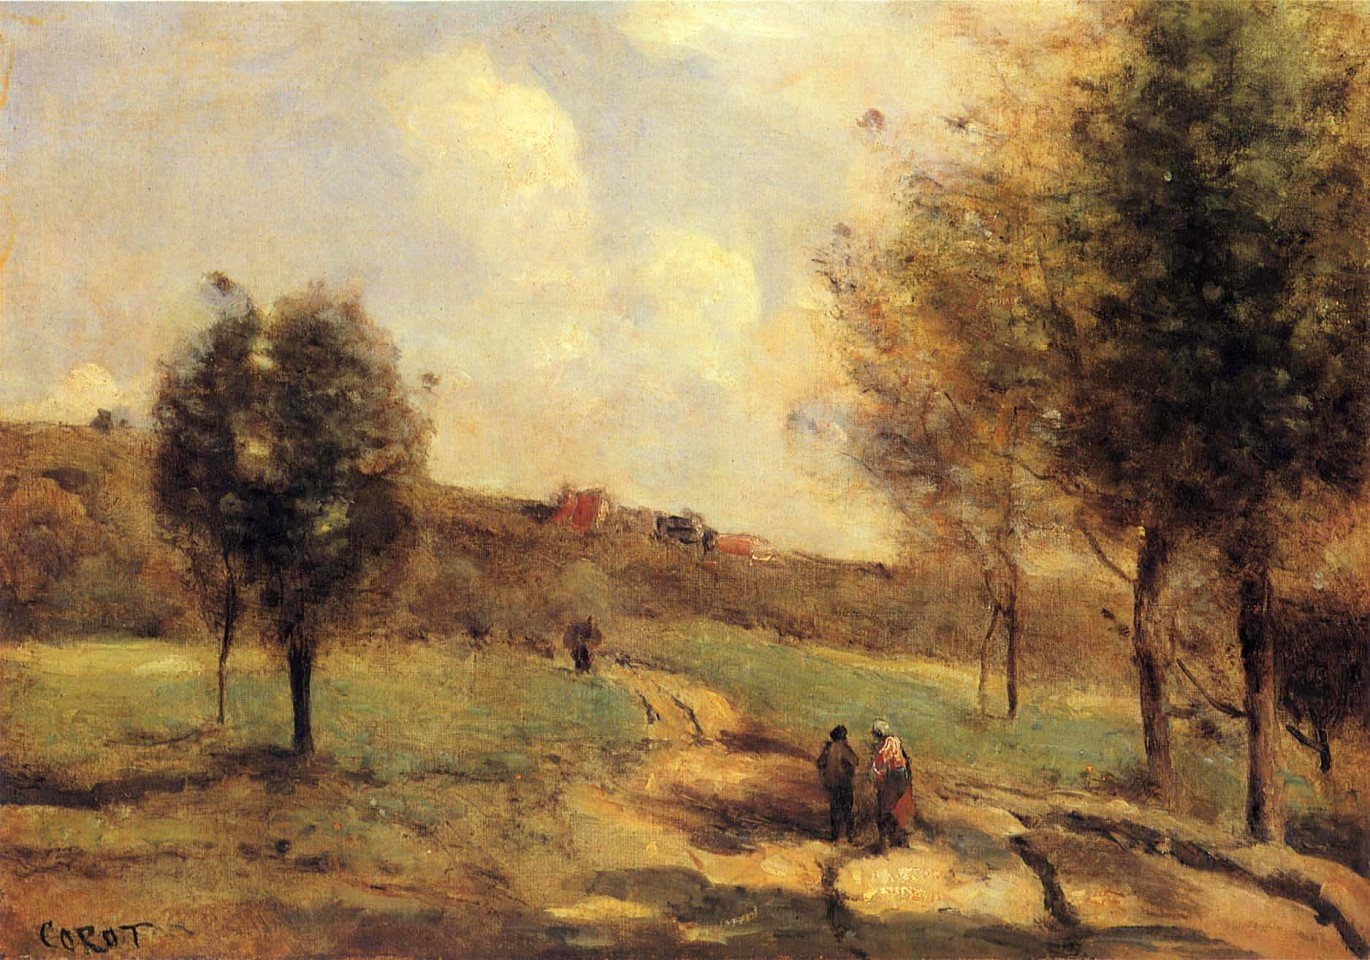 Jean Baptiste Camille Corot ,   Coubron - Route Montante  ,  ca. 1870     Oil on canvas ,  10 x 14 in. (25.4 x 35.6 cm)     COR-007-PA